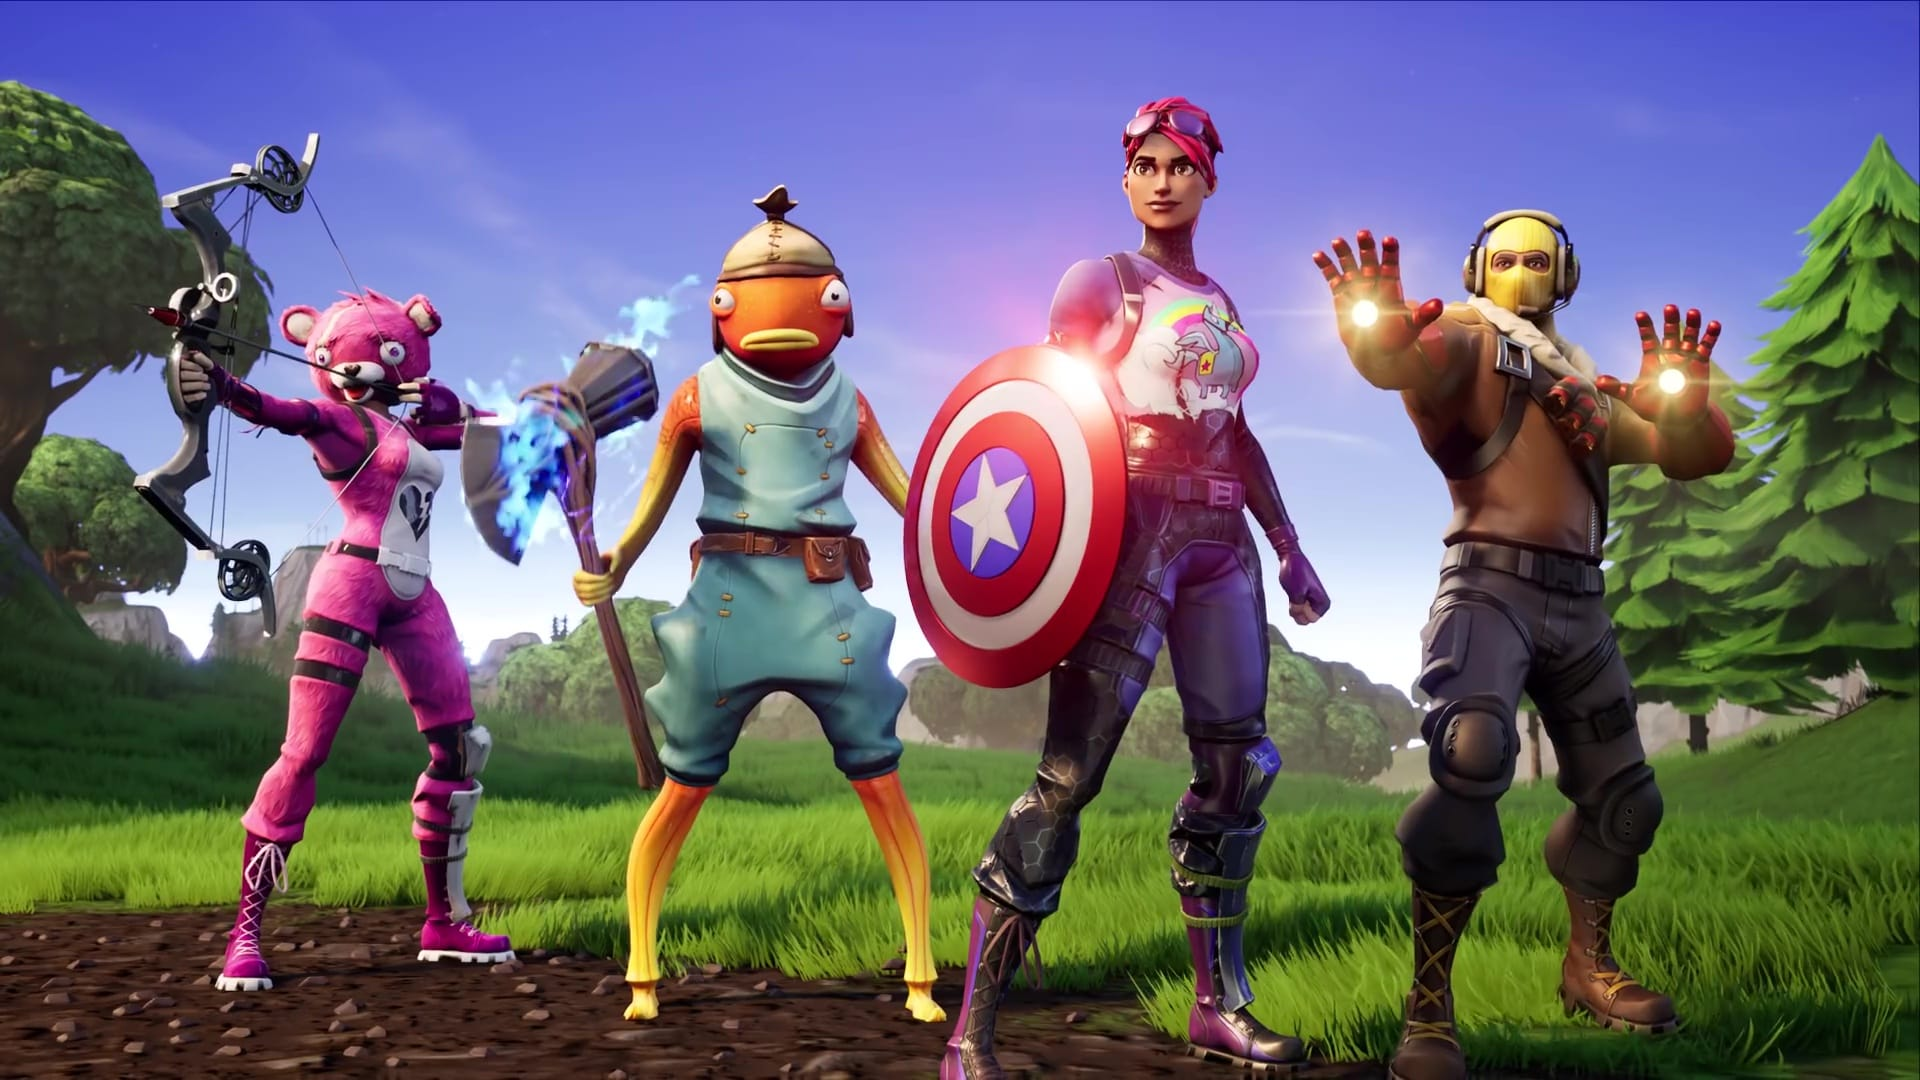 Fortnite' lets you fight Thanos with Avengers weapons | Engadget